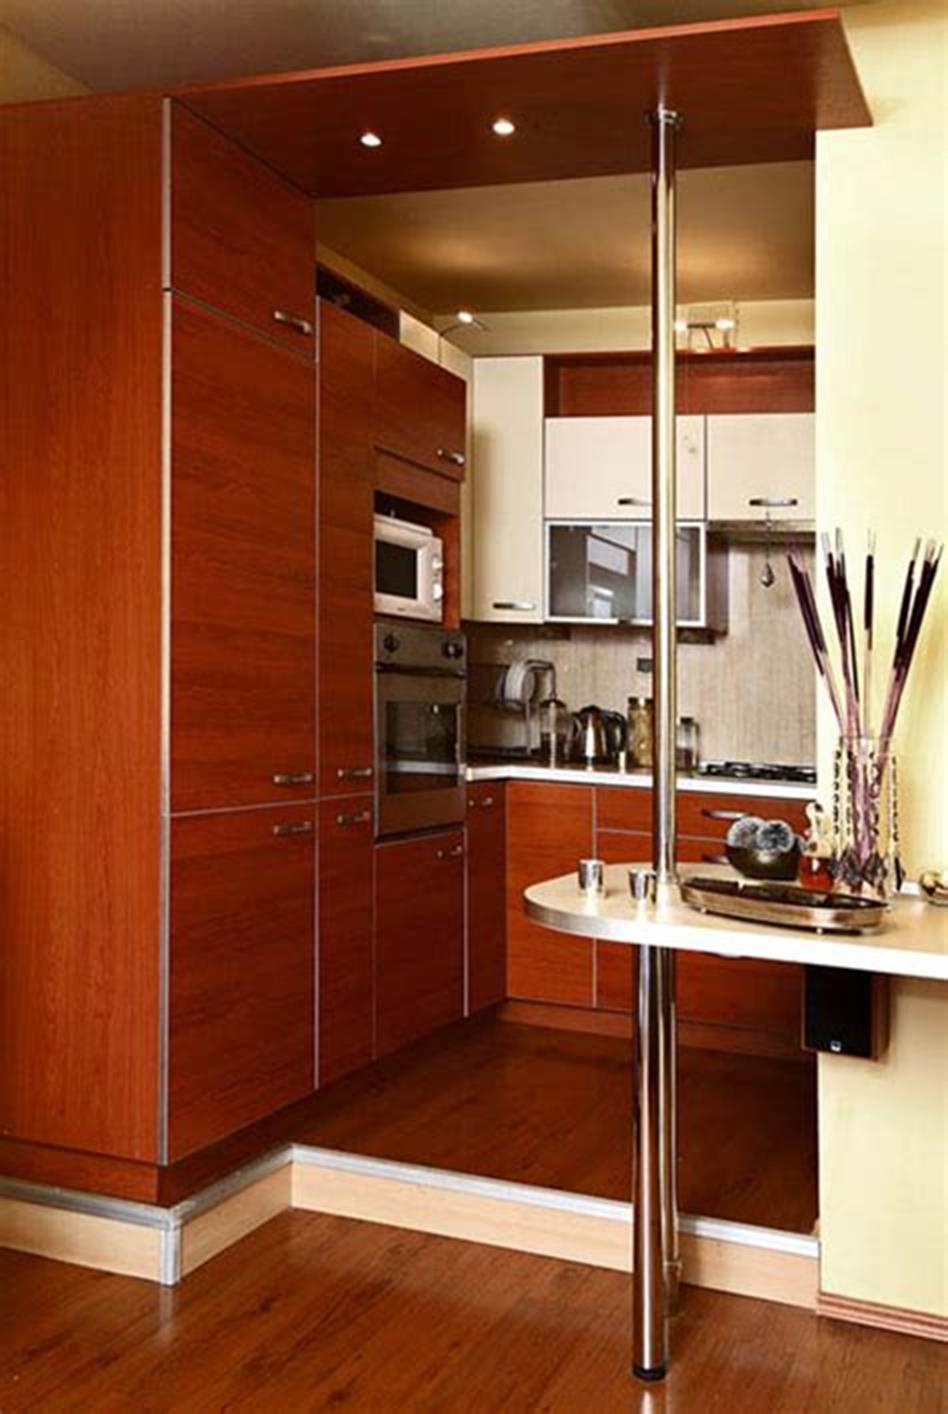 43 Amazing Kitchen Remodeling Ideas for Small Kitchens 2019 52